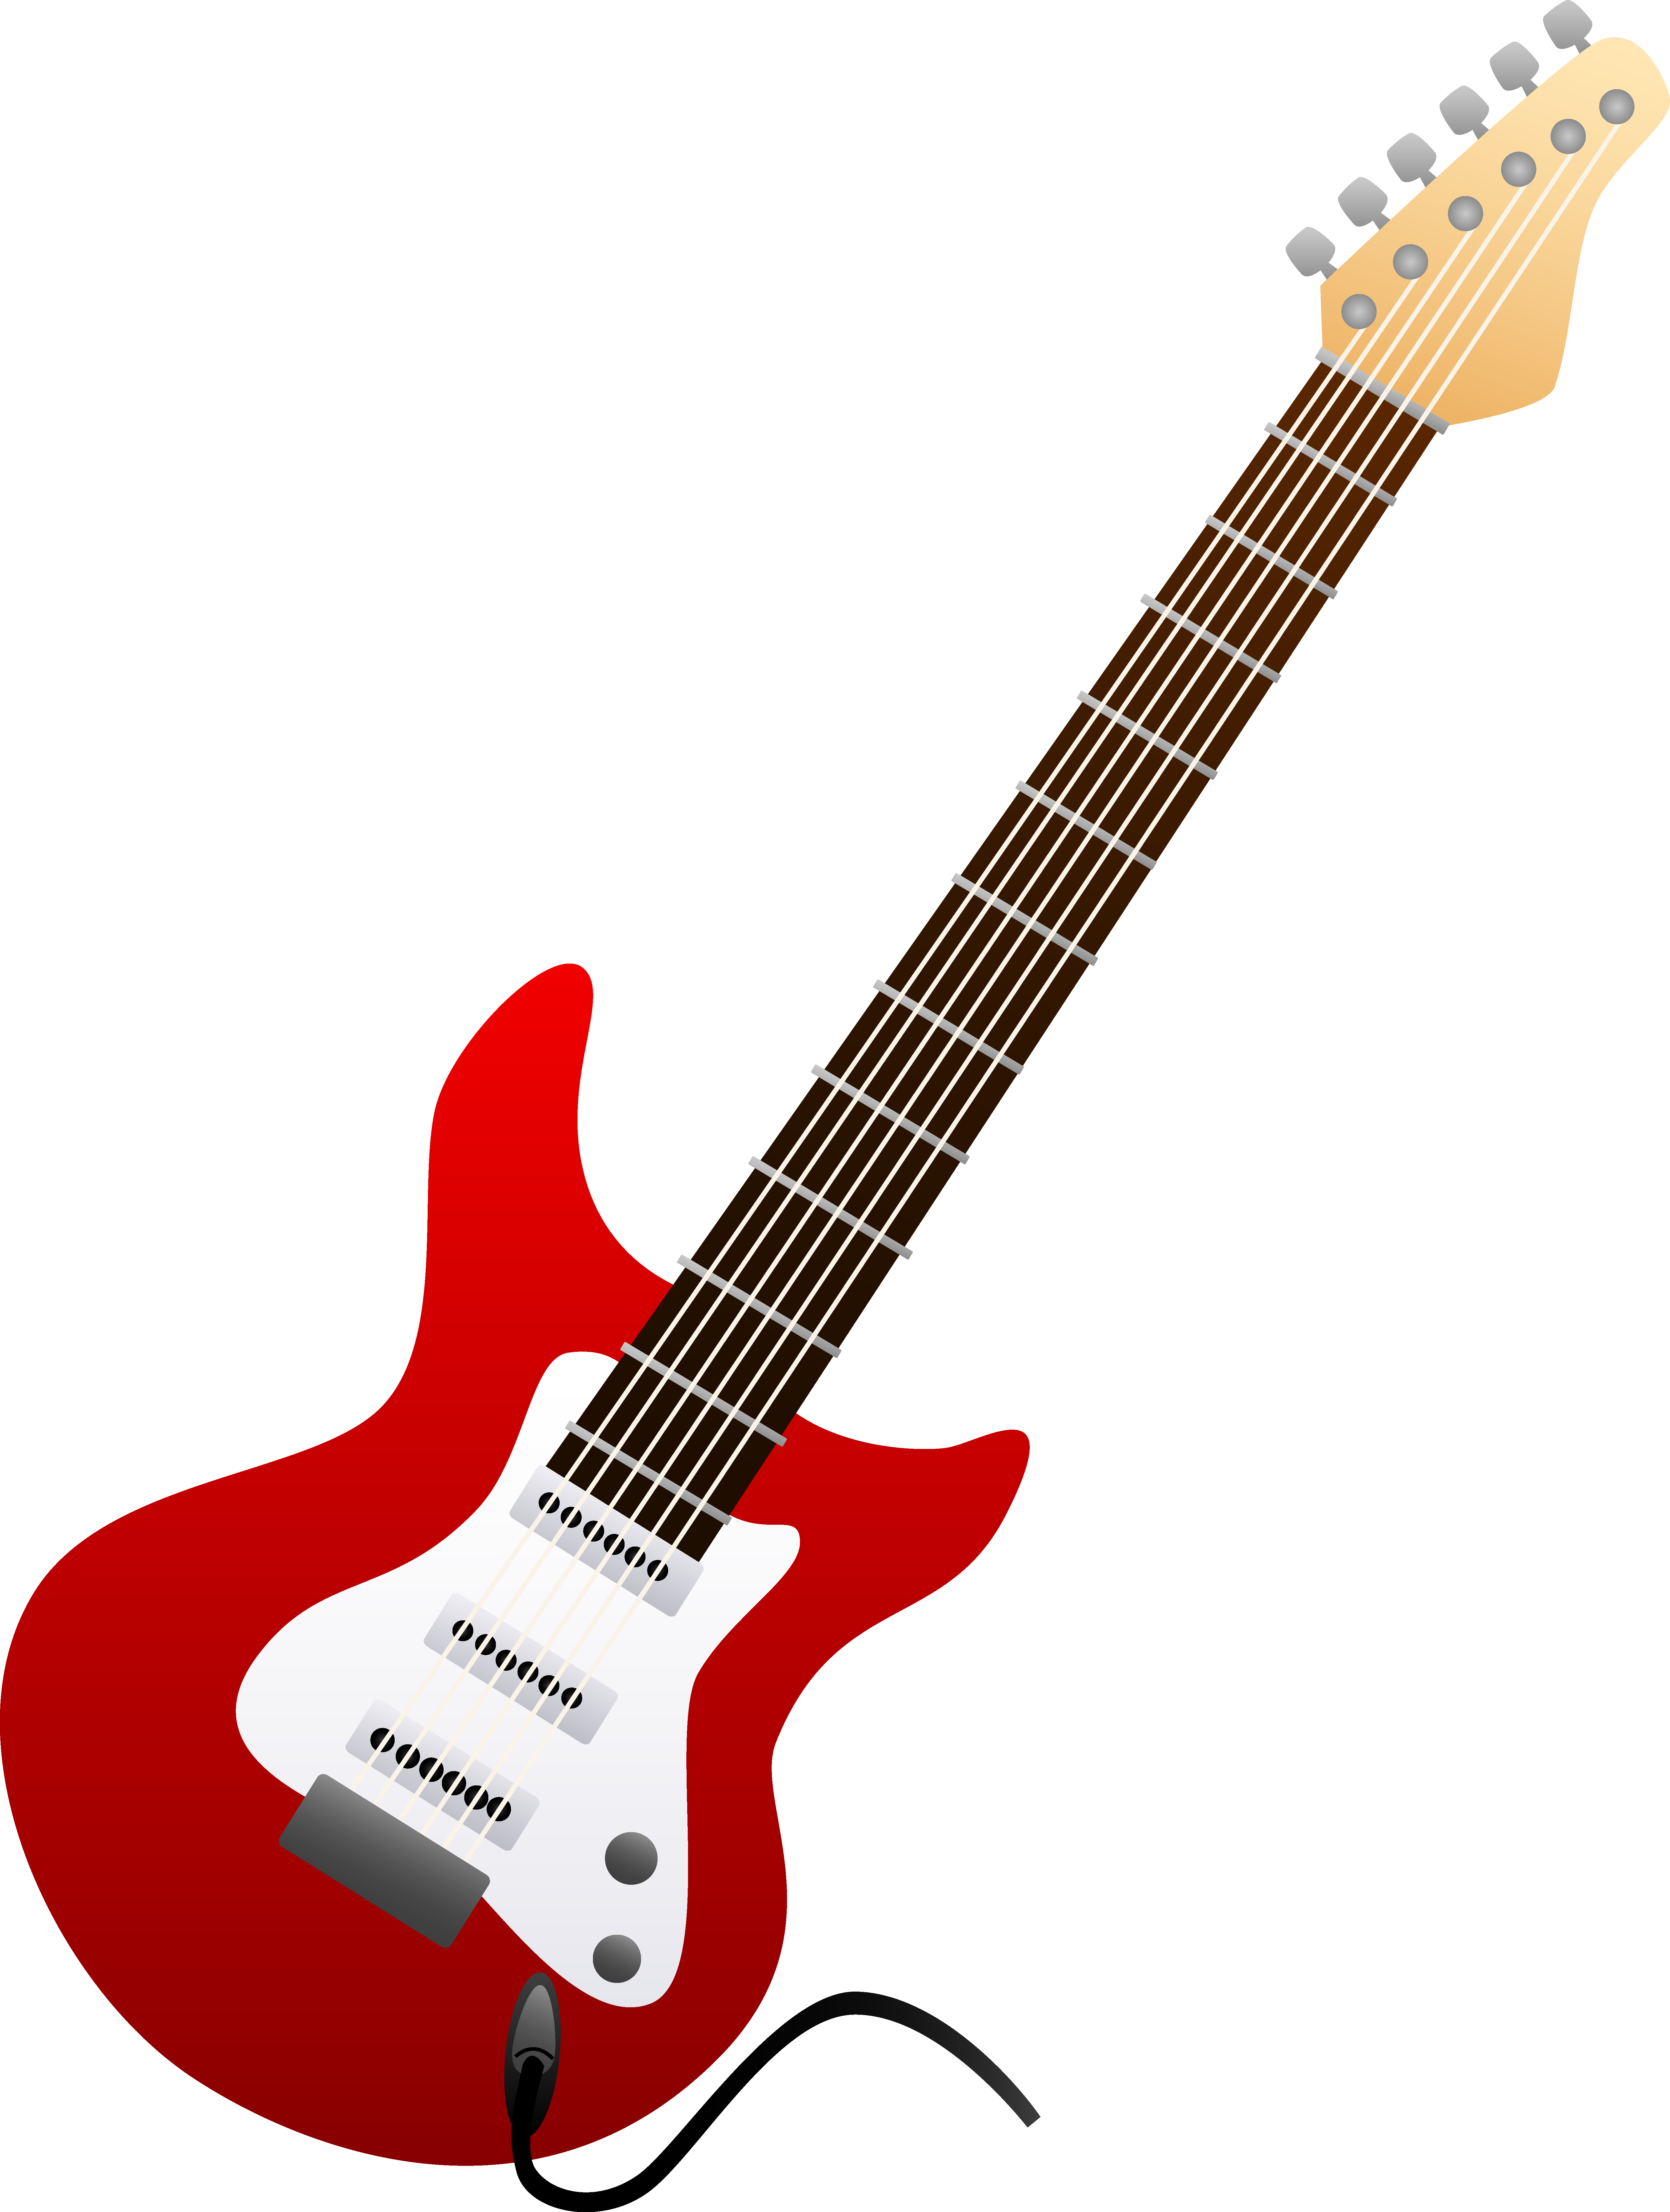 Pink Guitar Clipart | Clipart Panda - Free Clipart Images